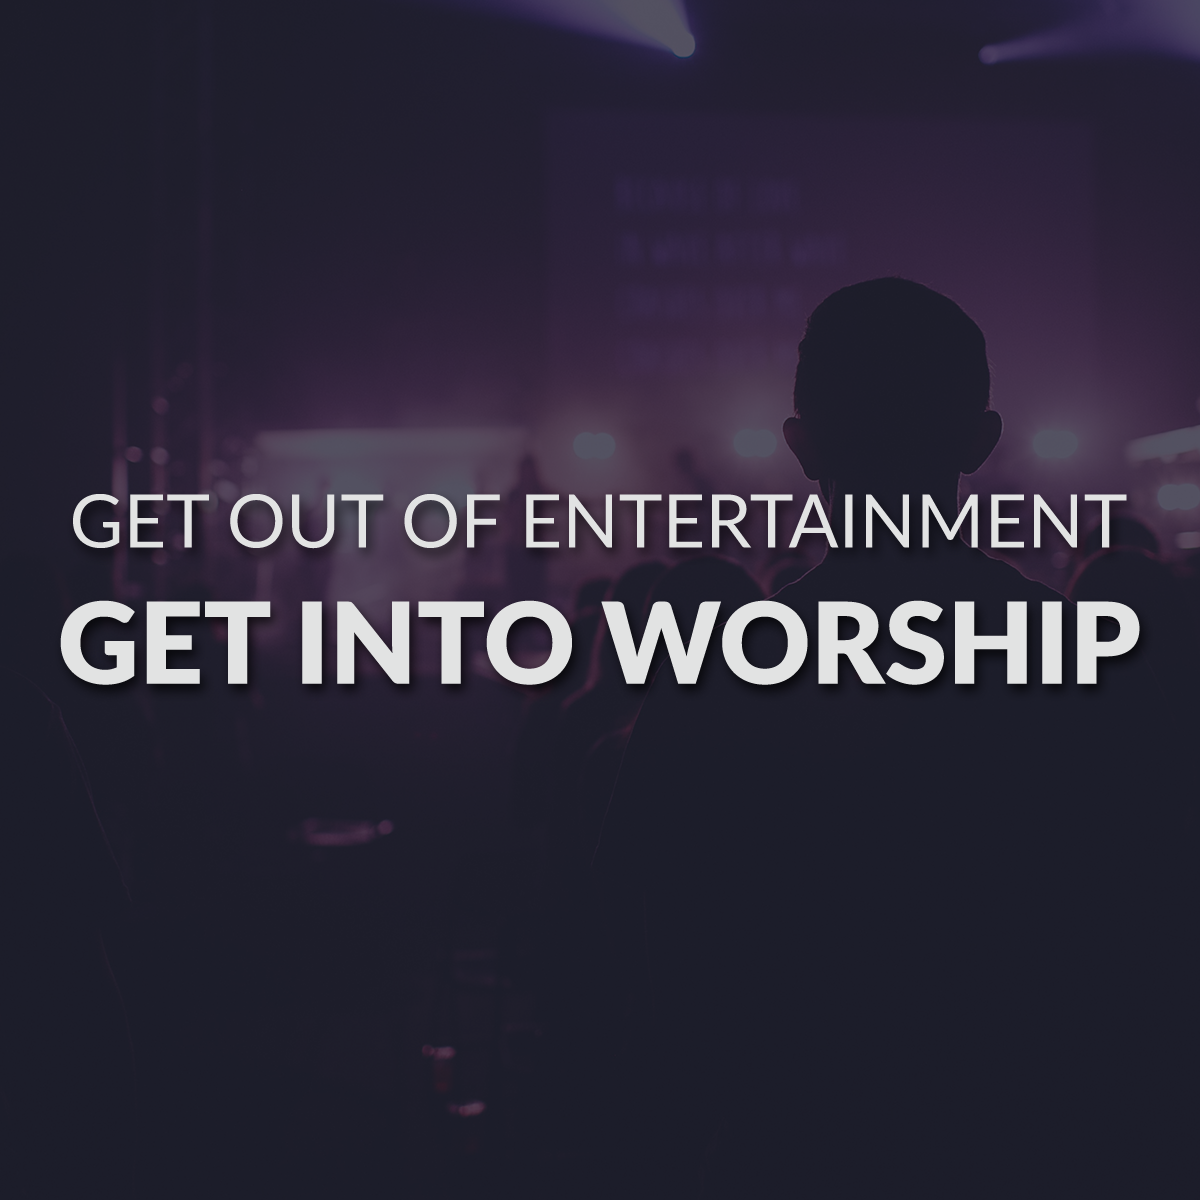 Worship leaders get out of entertainment get back into worship leading